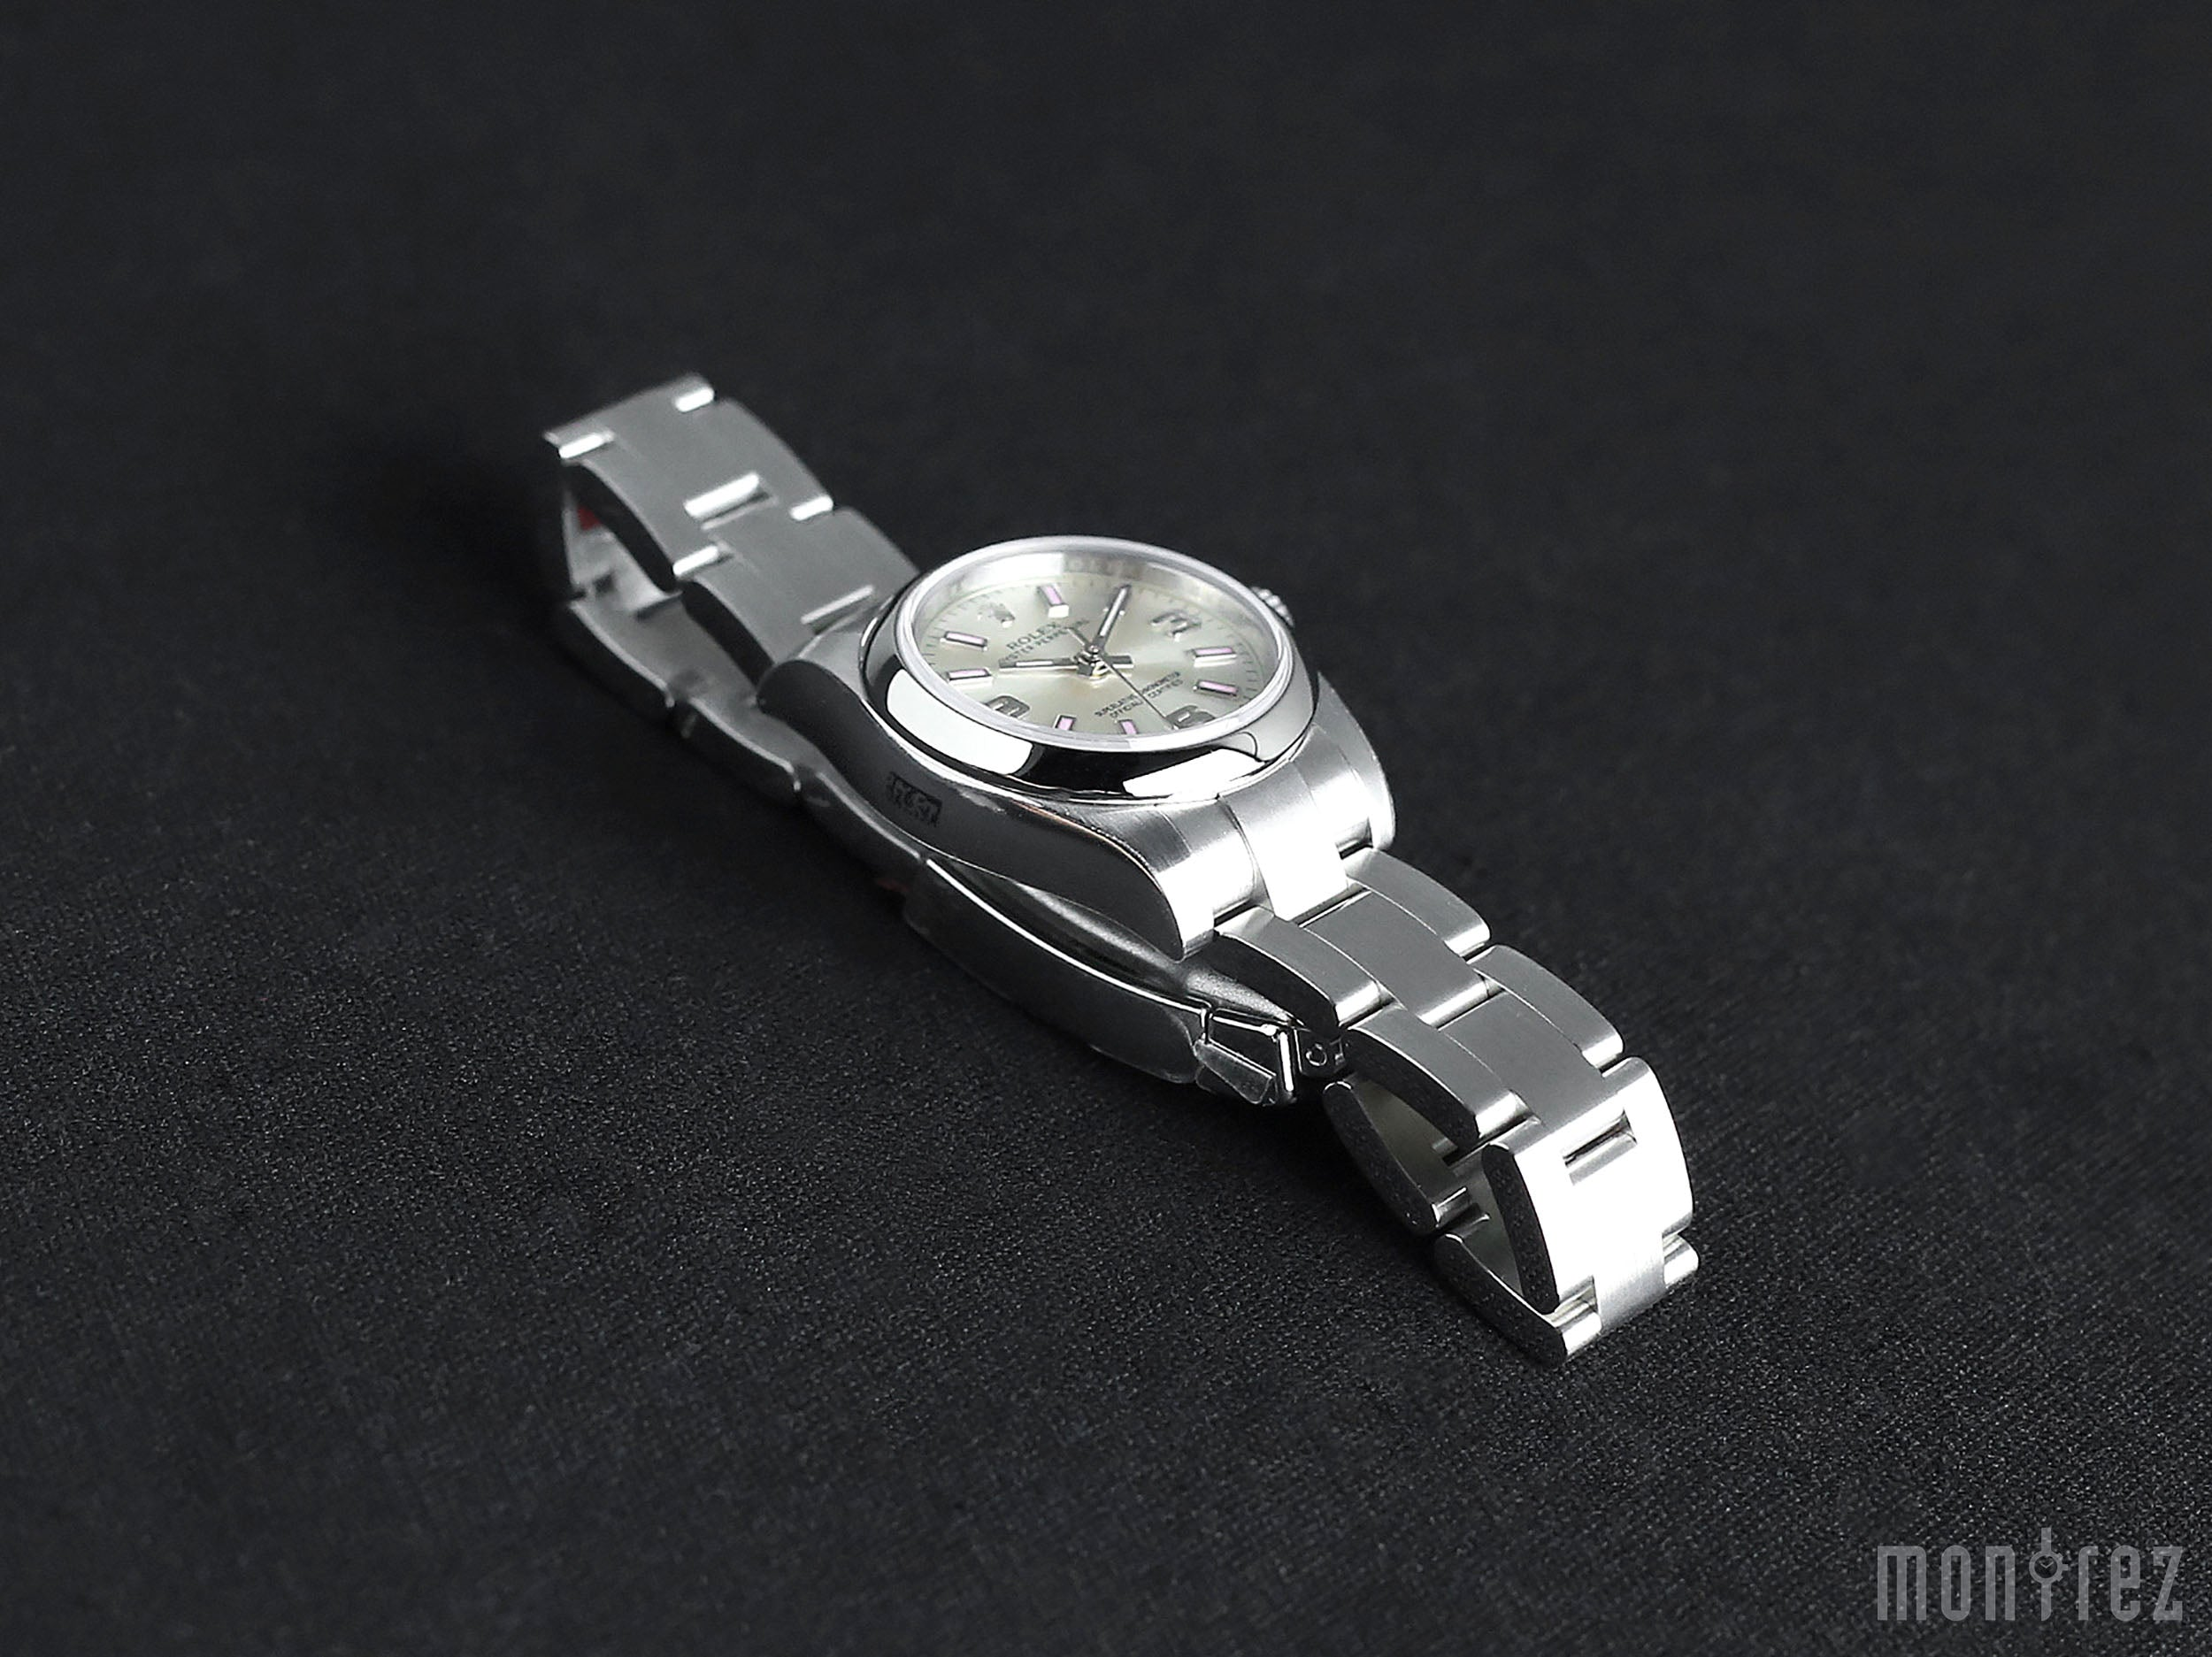 Rolex Oyster Perpetual 26mm 176200 Silver Dial 369 (Out of Production)